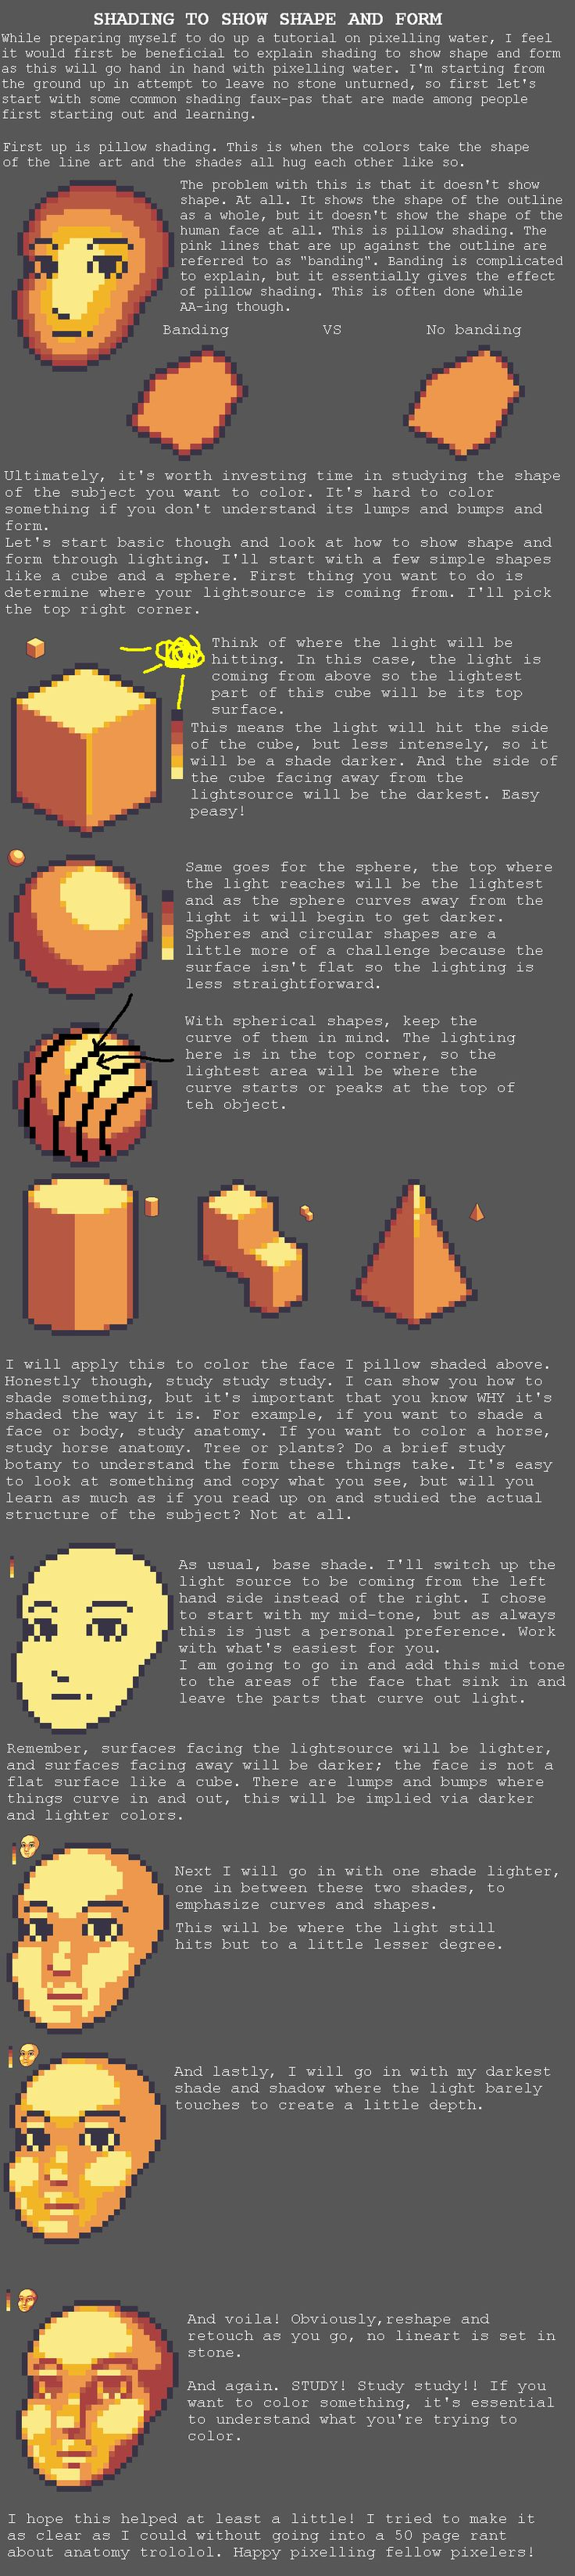 Pixel Art, both old and new and a few WIP's. Tutorials at the end. - Album on Imgur